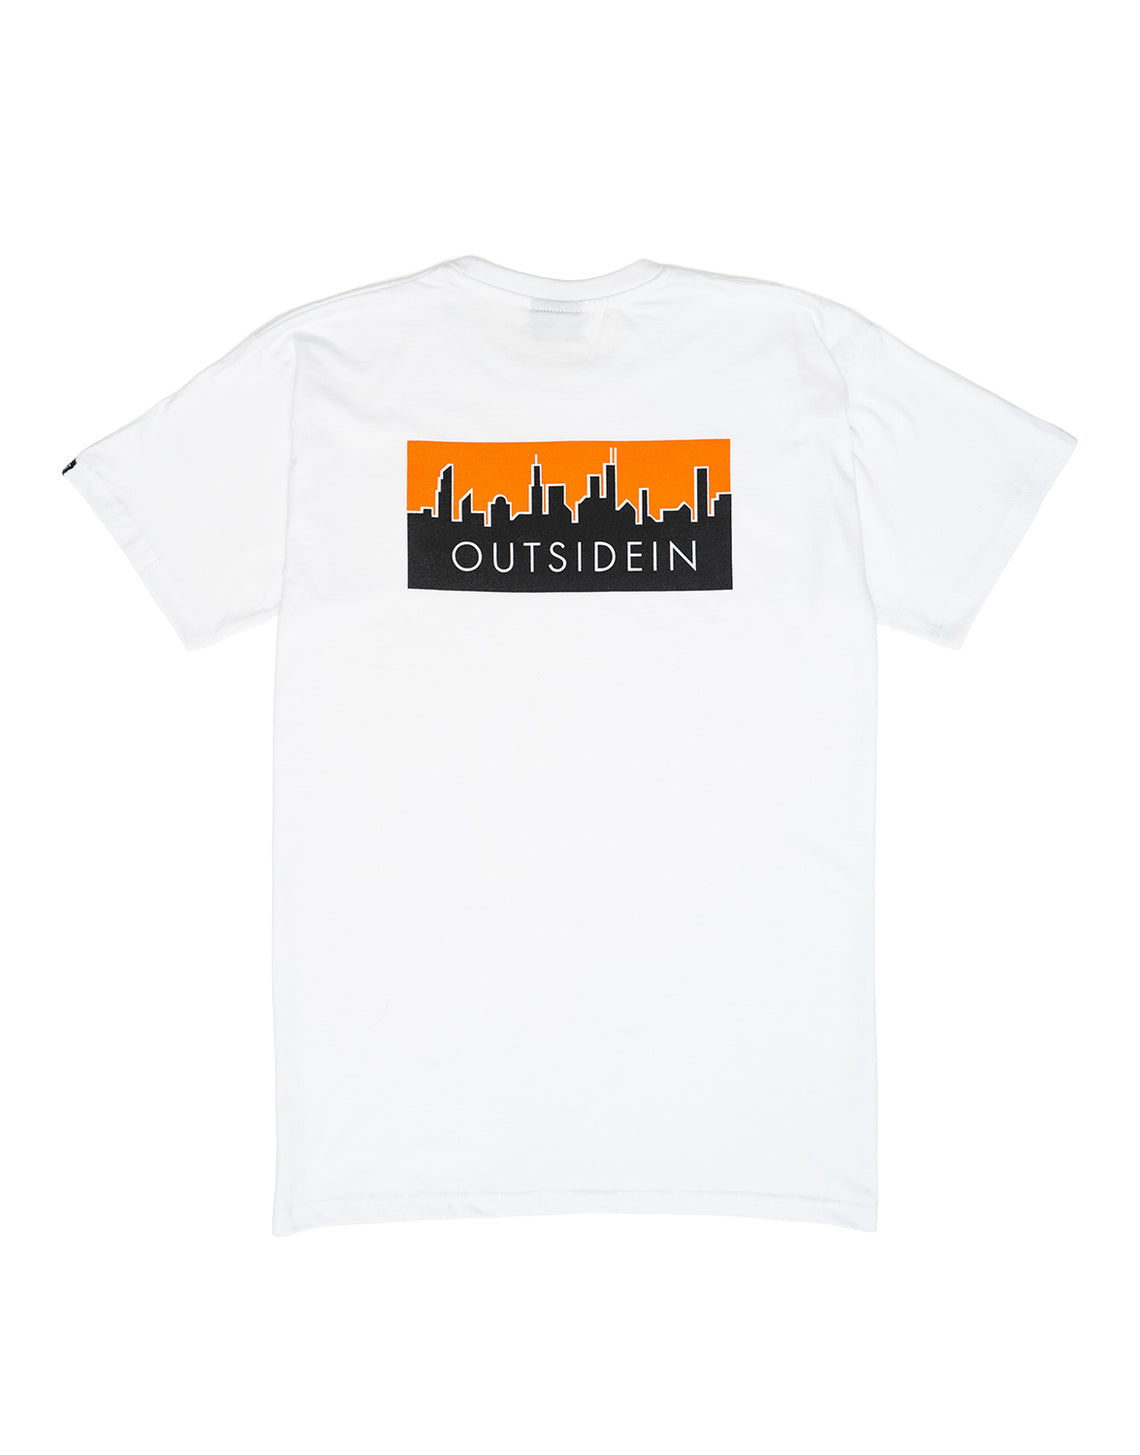 Cityscape T-Shirt White - OutsideIn